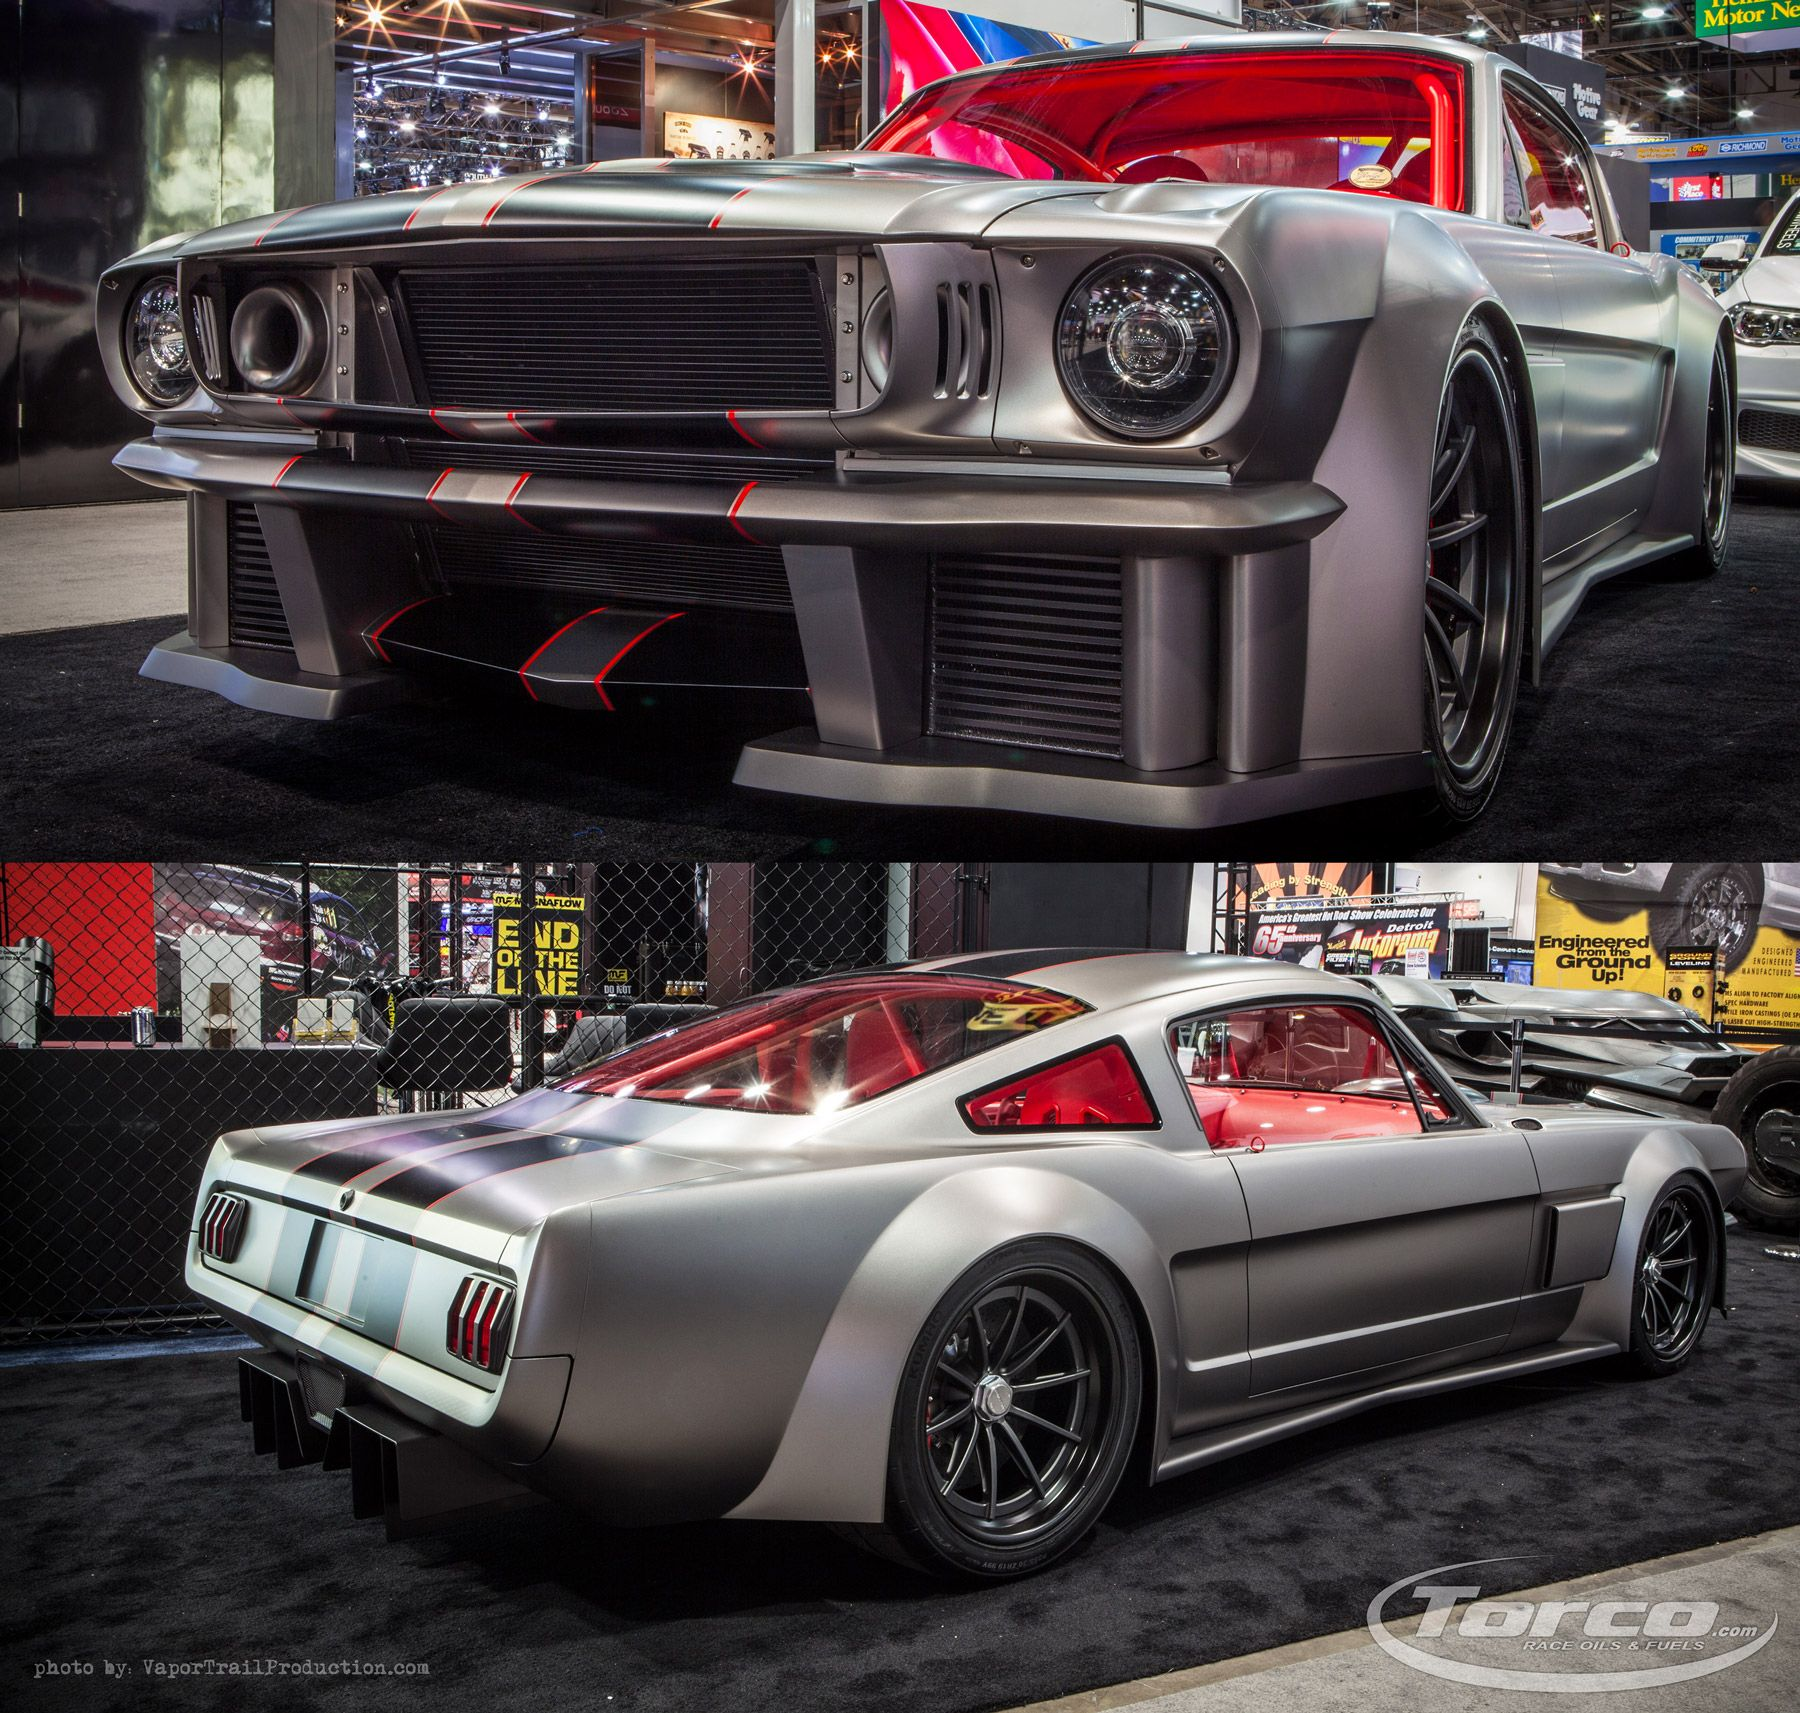 Wide body 1965 mustang fastback page 3 awesome 60s mustangs restomods pinterest mustang fastback 1965 mustang and ford lincoln mercury